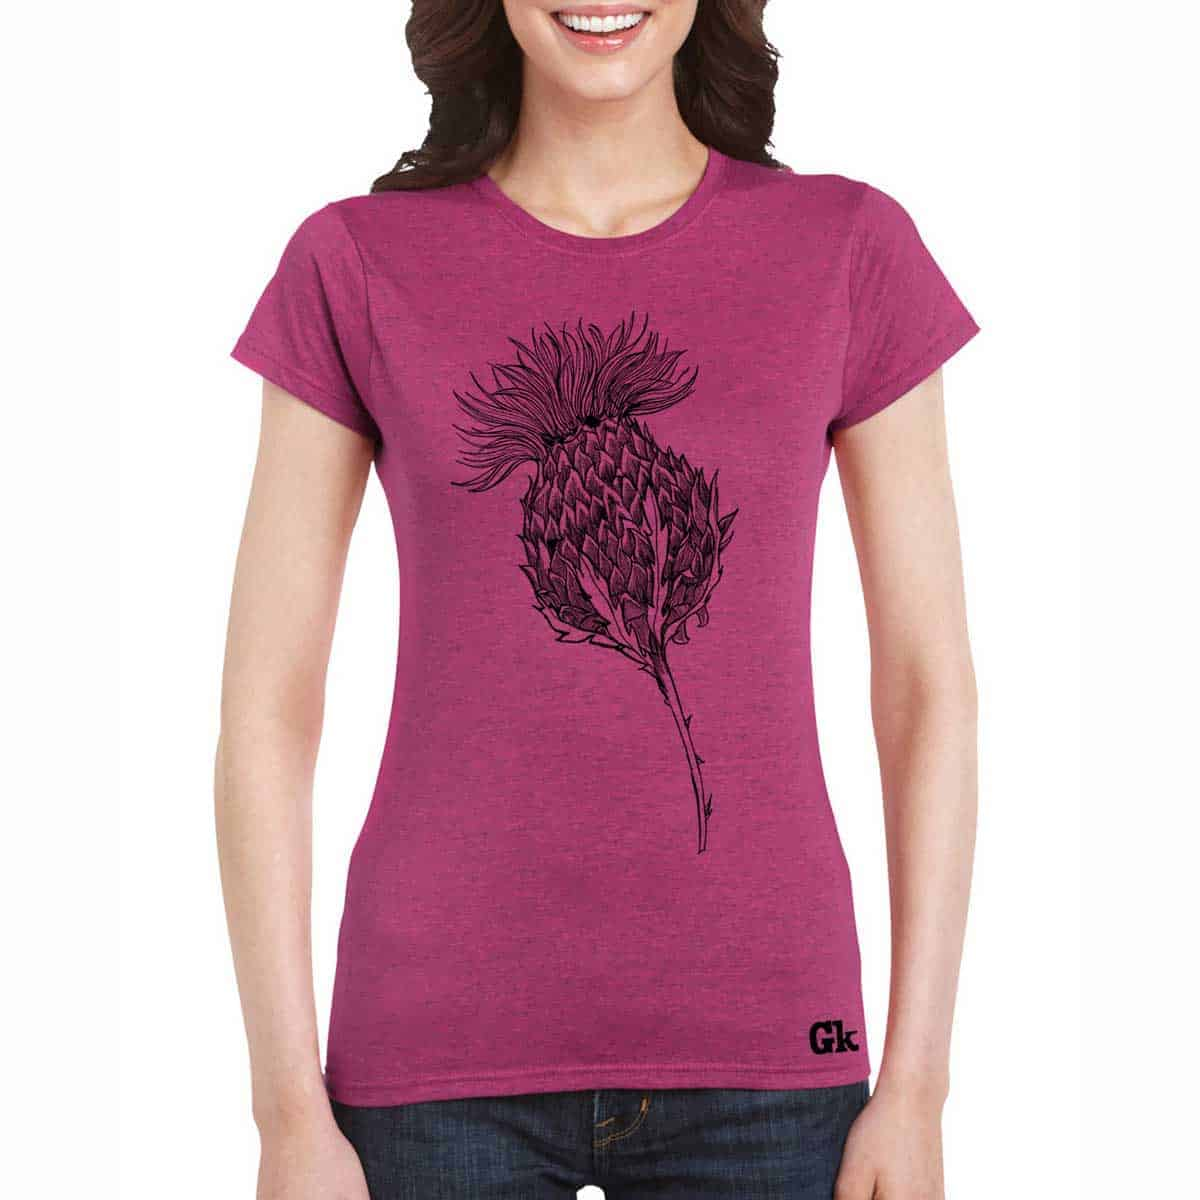 f3fa7dd54 Flower of Scotland Scottish thistle t-shirt for women in rose by Gillian  Kyle